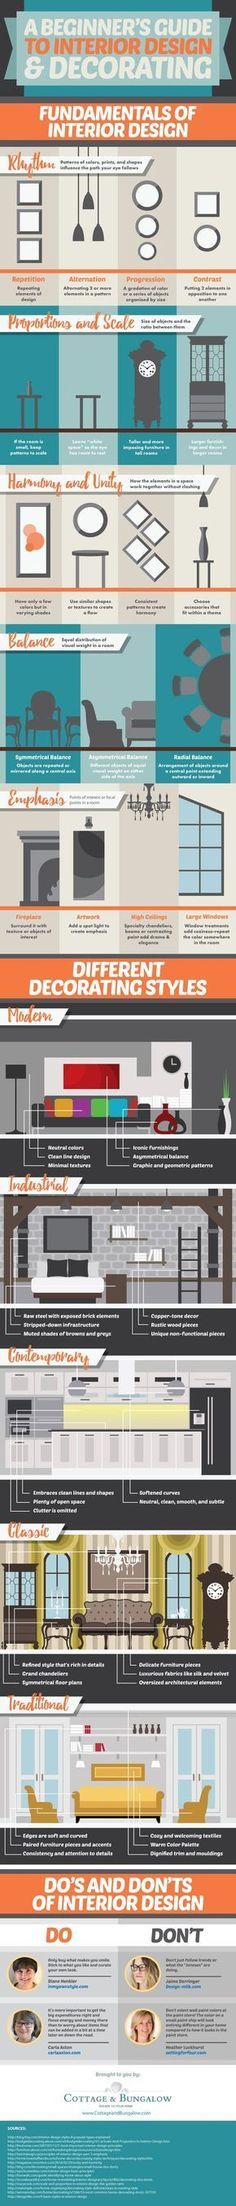 These 9 home decor charts are SO GOOD! I\'m so glad I found this! These have seriously helped me redecorate my rooms and make them look AWESOME! So pinning this!